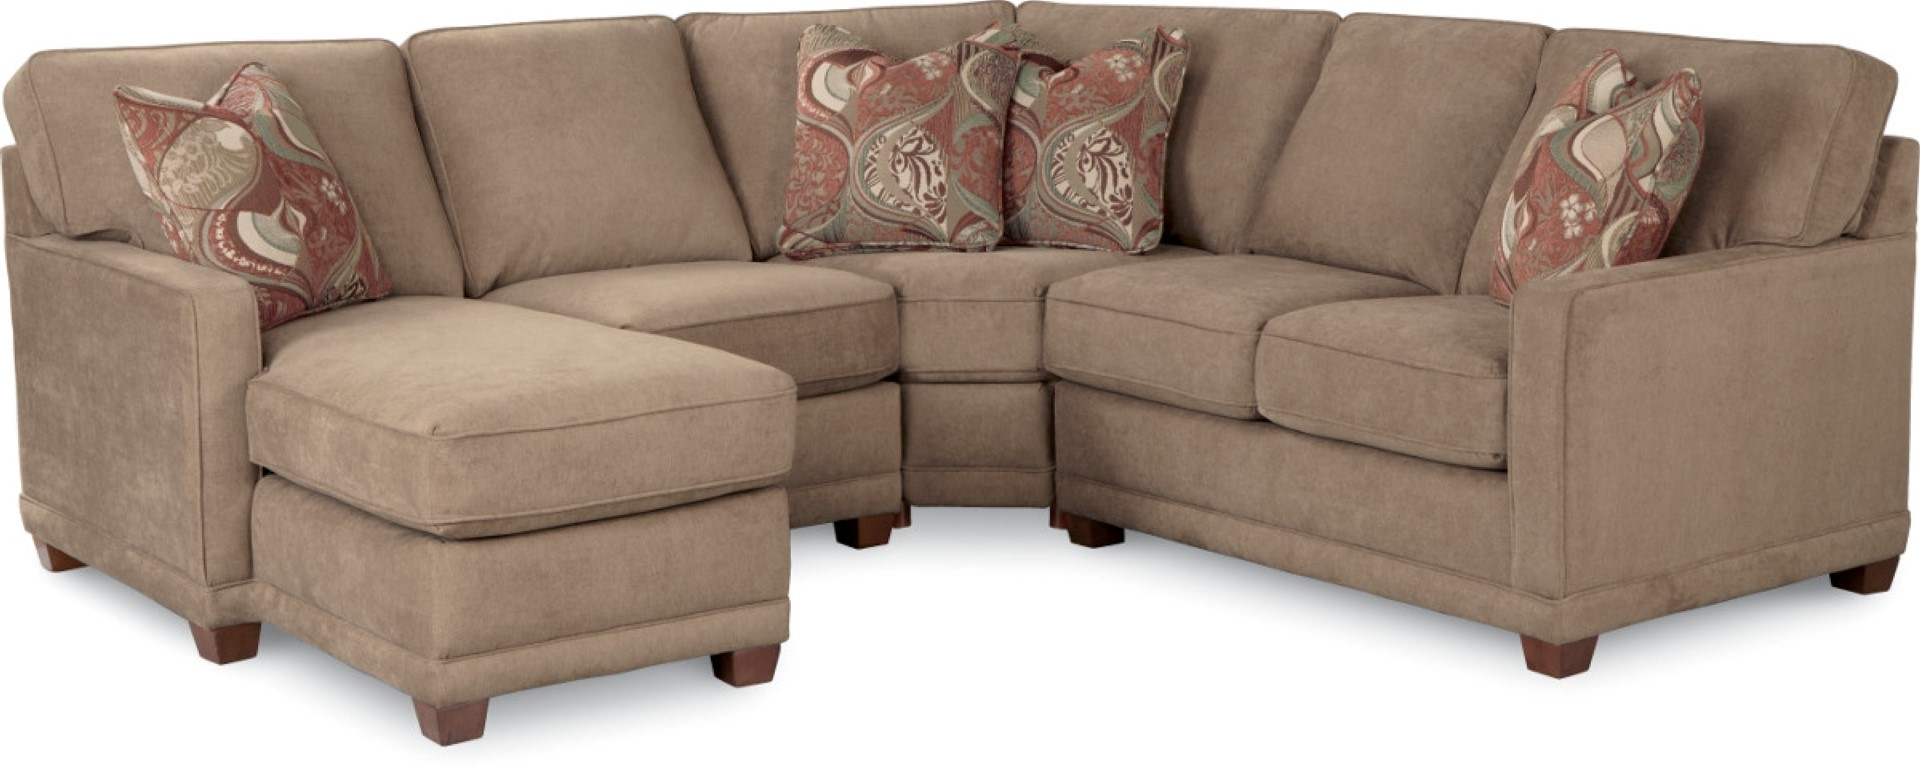 Well Liked La Z Boy Sectional Sofas Pertaining To Kennedy Sectional Sofa – Town & Country Furniture (View 14 of 15)